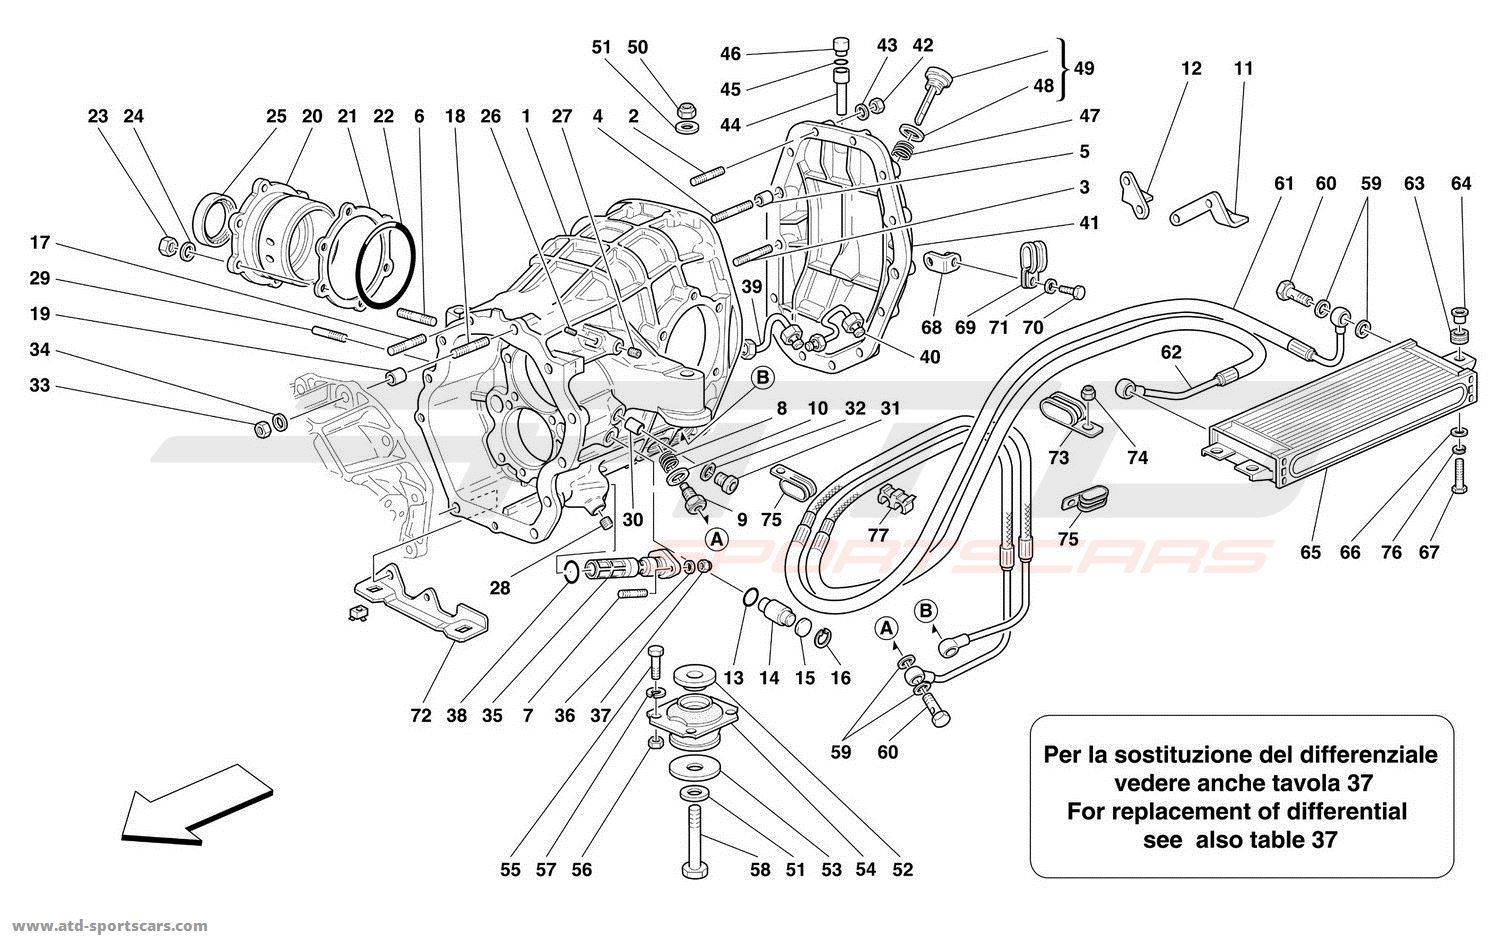 DIFFERENTIAL CARRIER AND CLUTCH COOLING RADIATOR